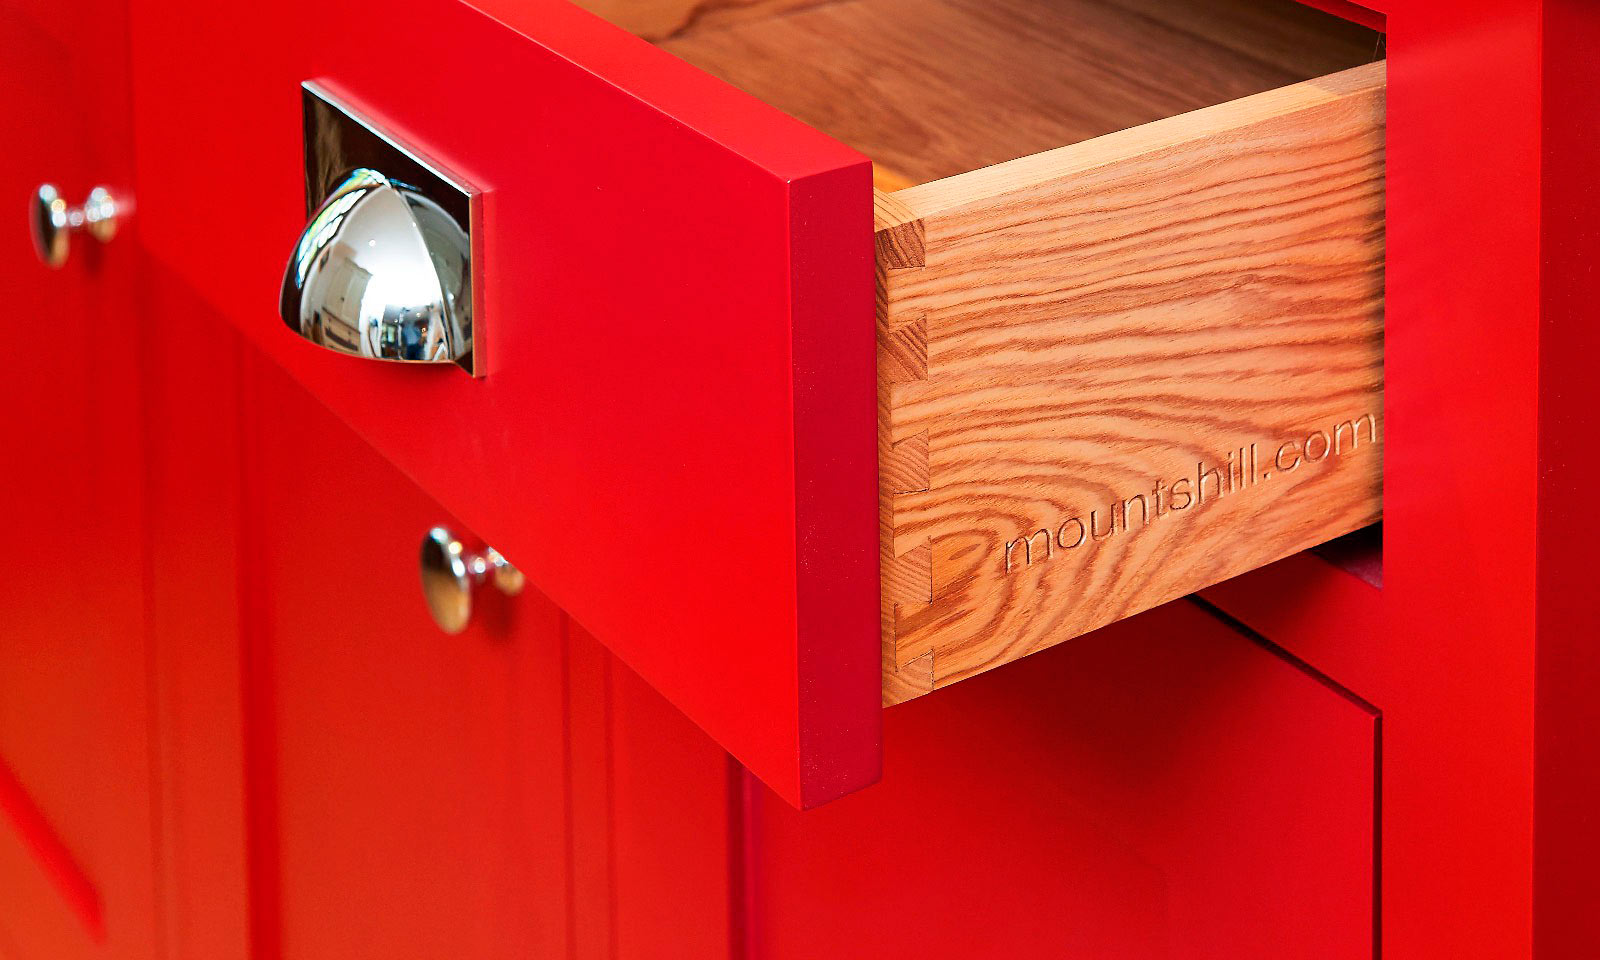 Scarlet Dresser. A bespoke, handmade, hand-painted traditional red dresser, for inclusion in a classic shaker style kitchen. Manufactured with an ash top and bright polished chrome cup handles, another future antique from Mounts Hill Woodcraft.